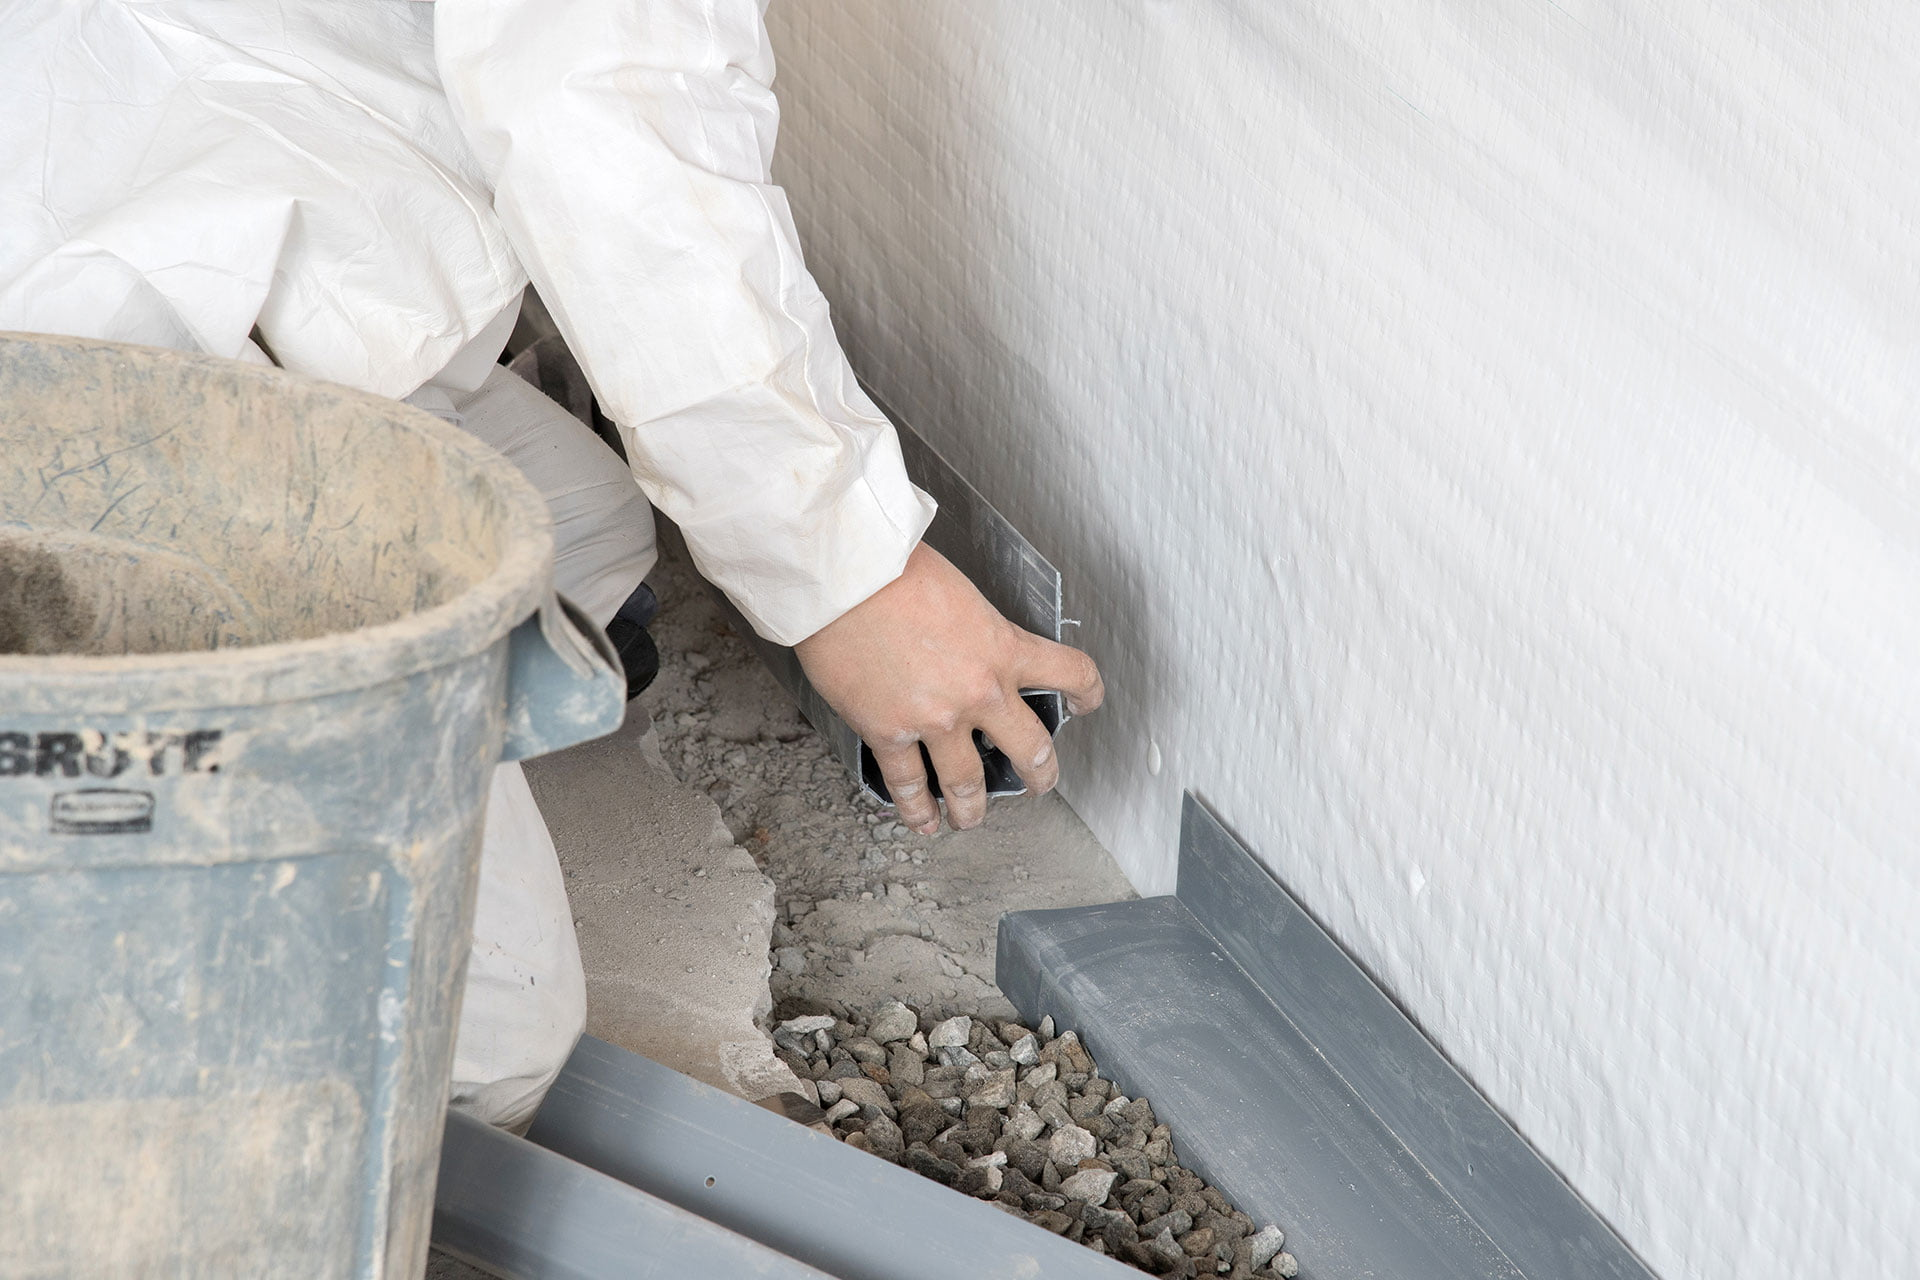 French Drain for Waterproofing